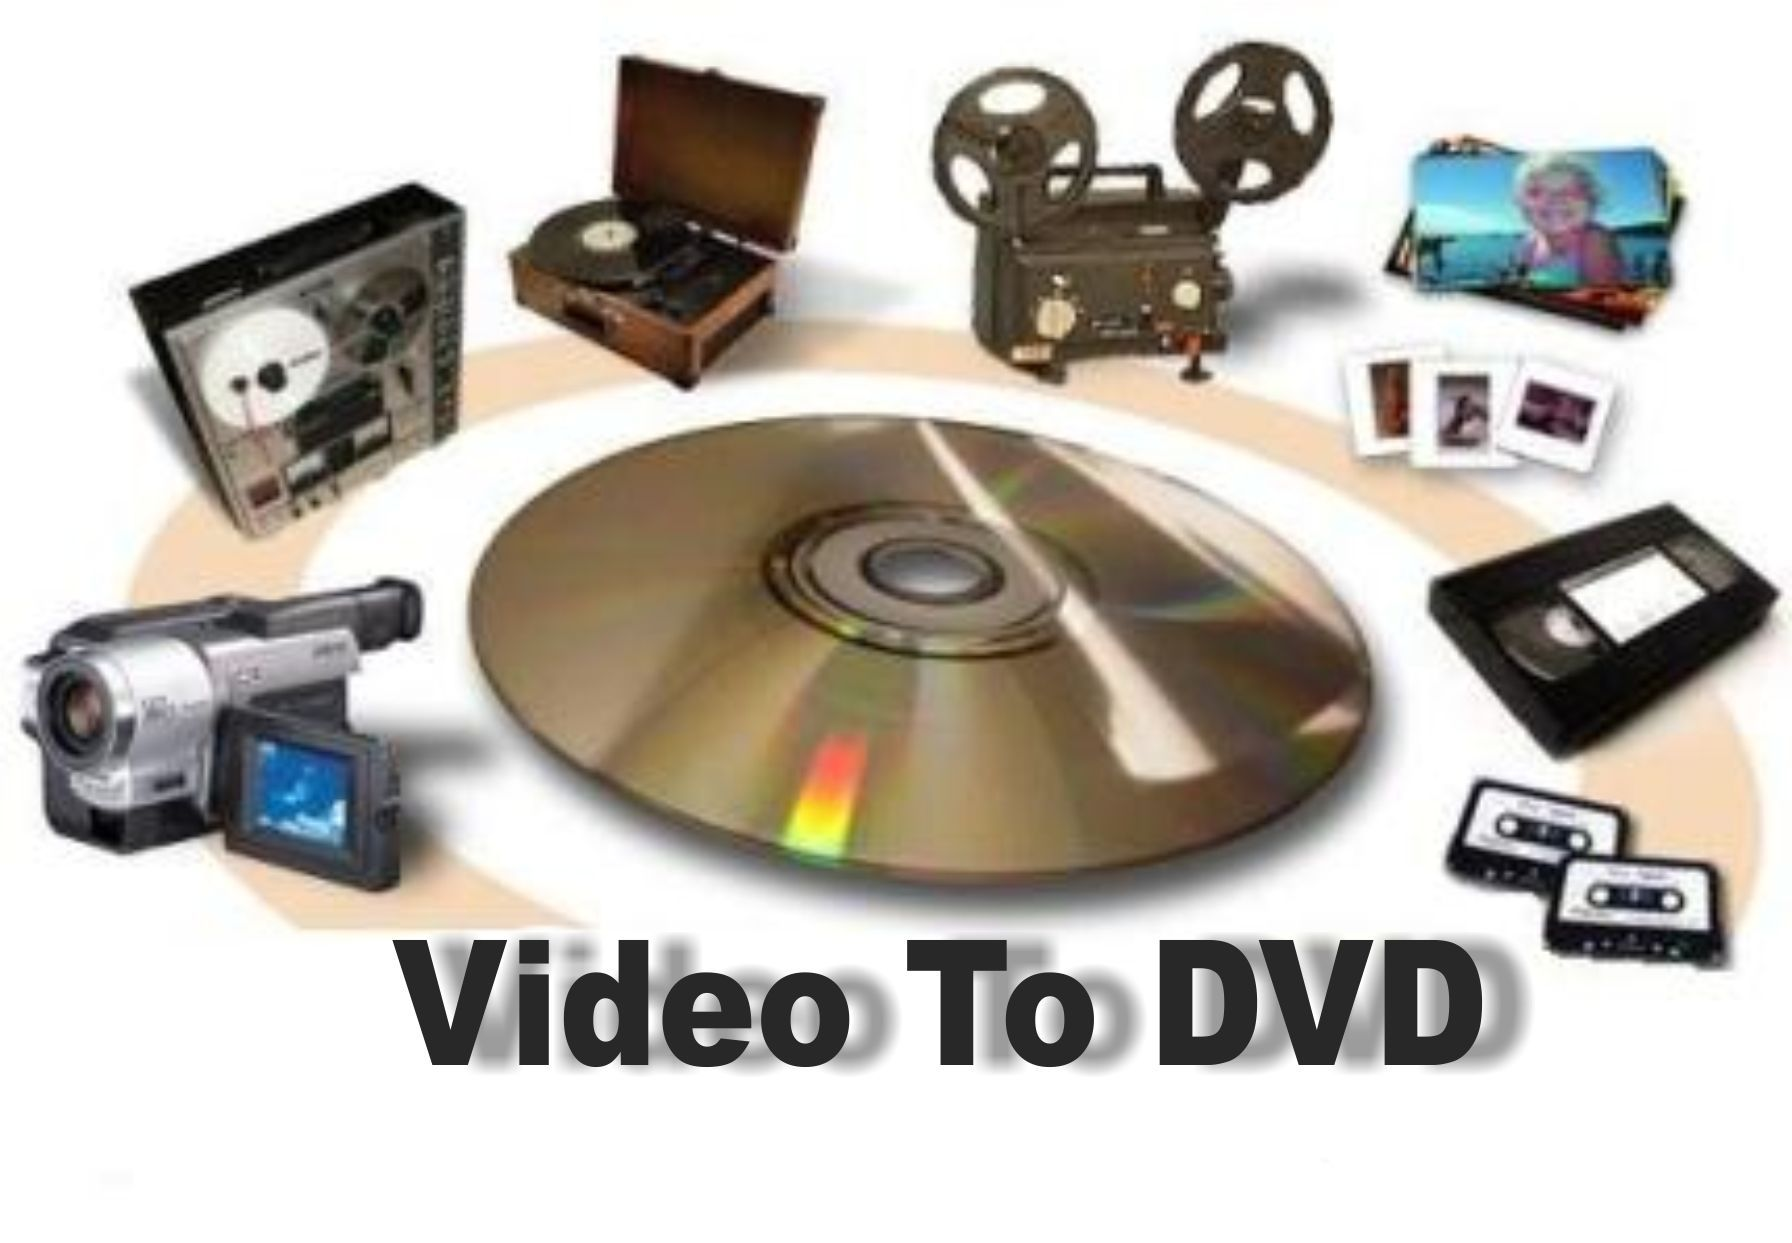 Convert Transfer Vhs Tapes Beta Tapes 8mm 16mm Cine Films Camcorder Tapes Handycam Tapes Audio Tapes Lp S As Well As Digital Vhs To Dvd Dvd Video Tapes